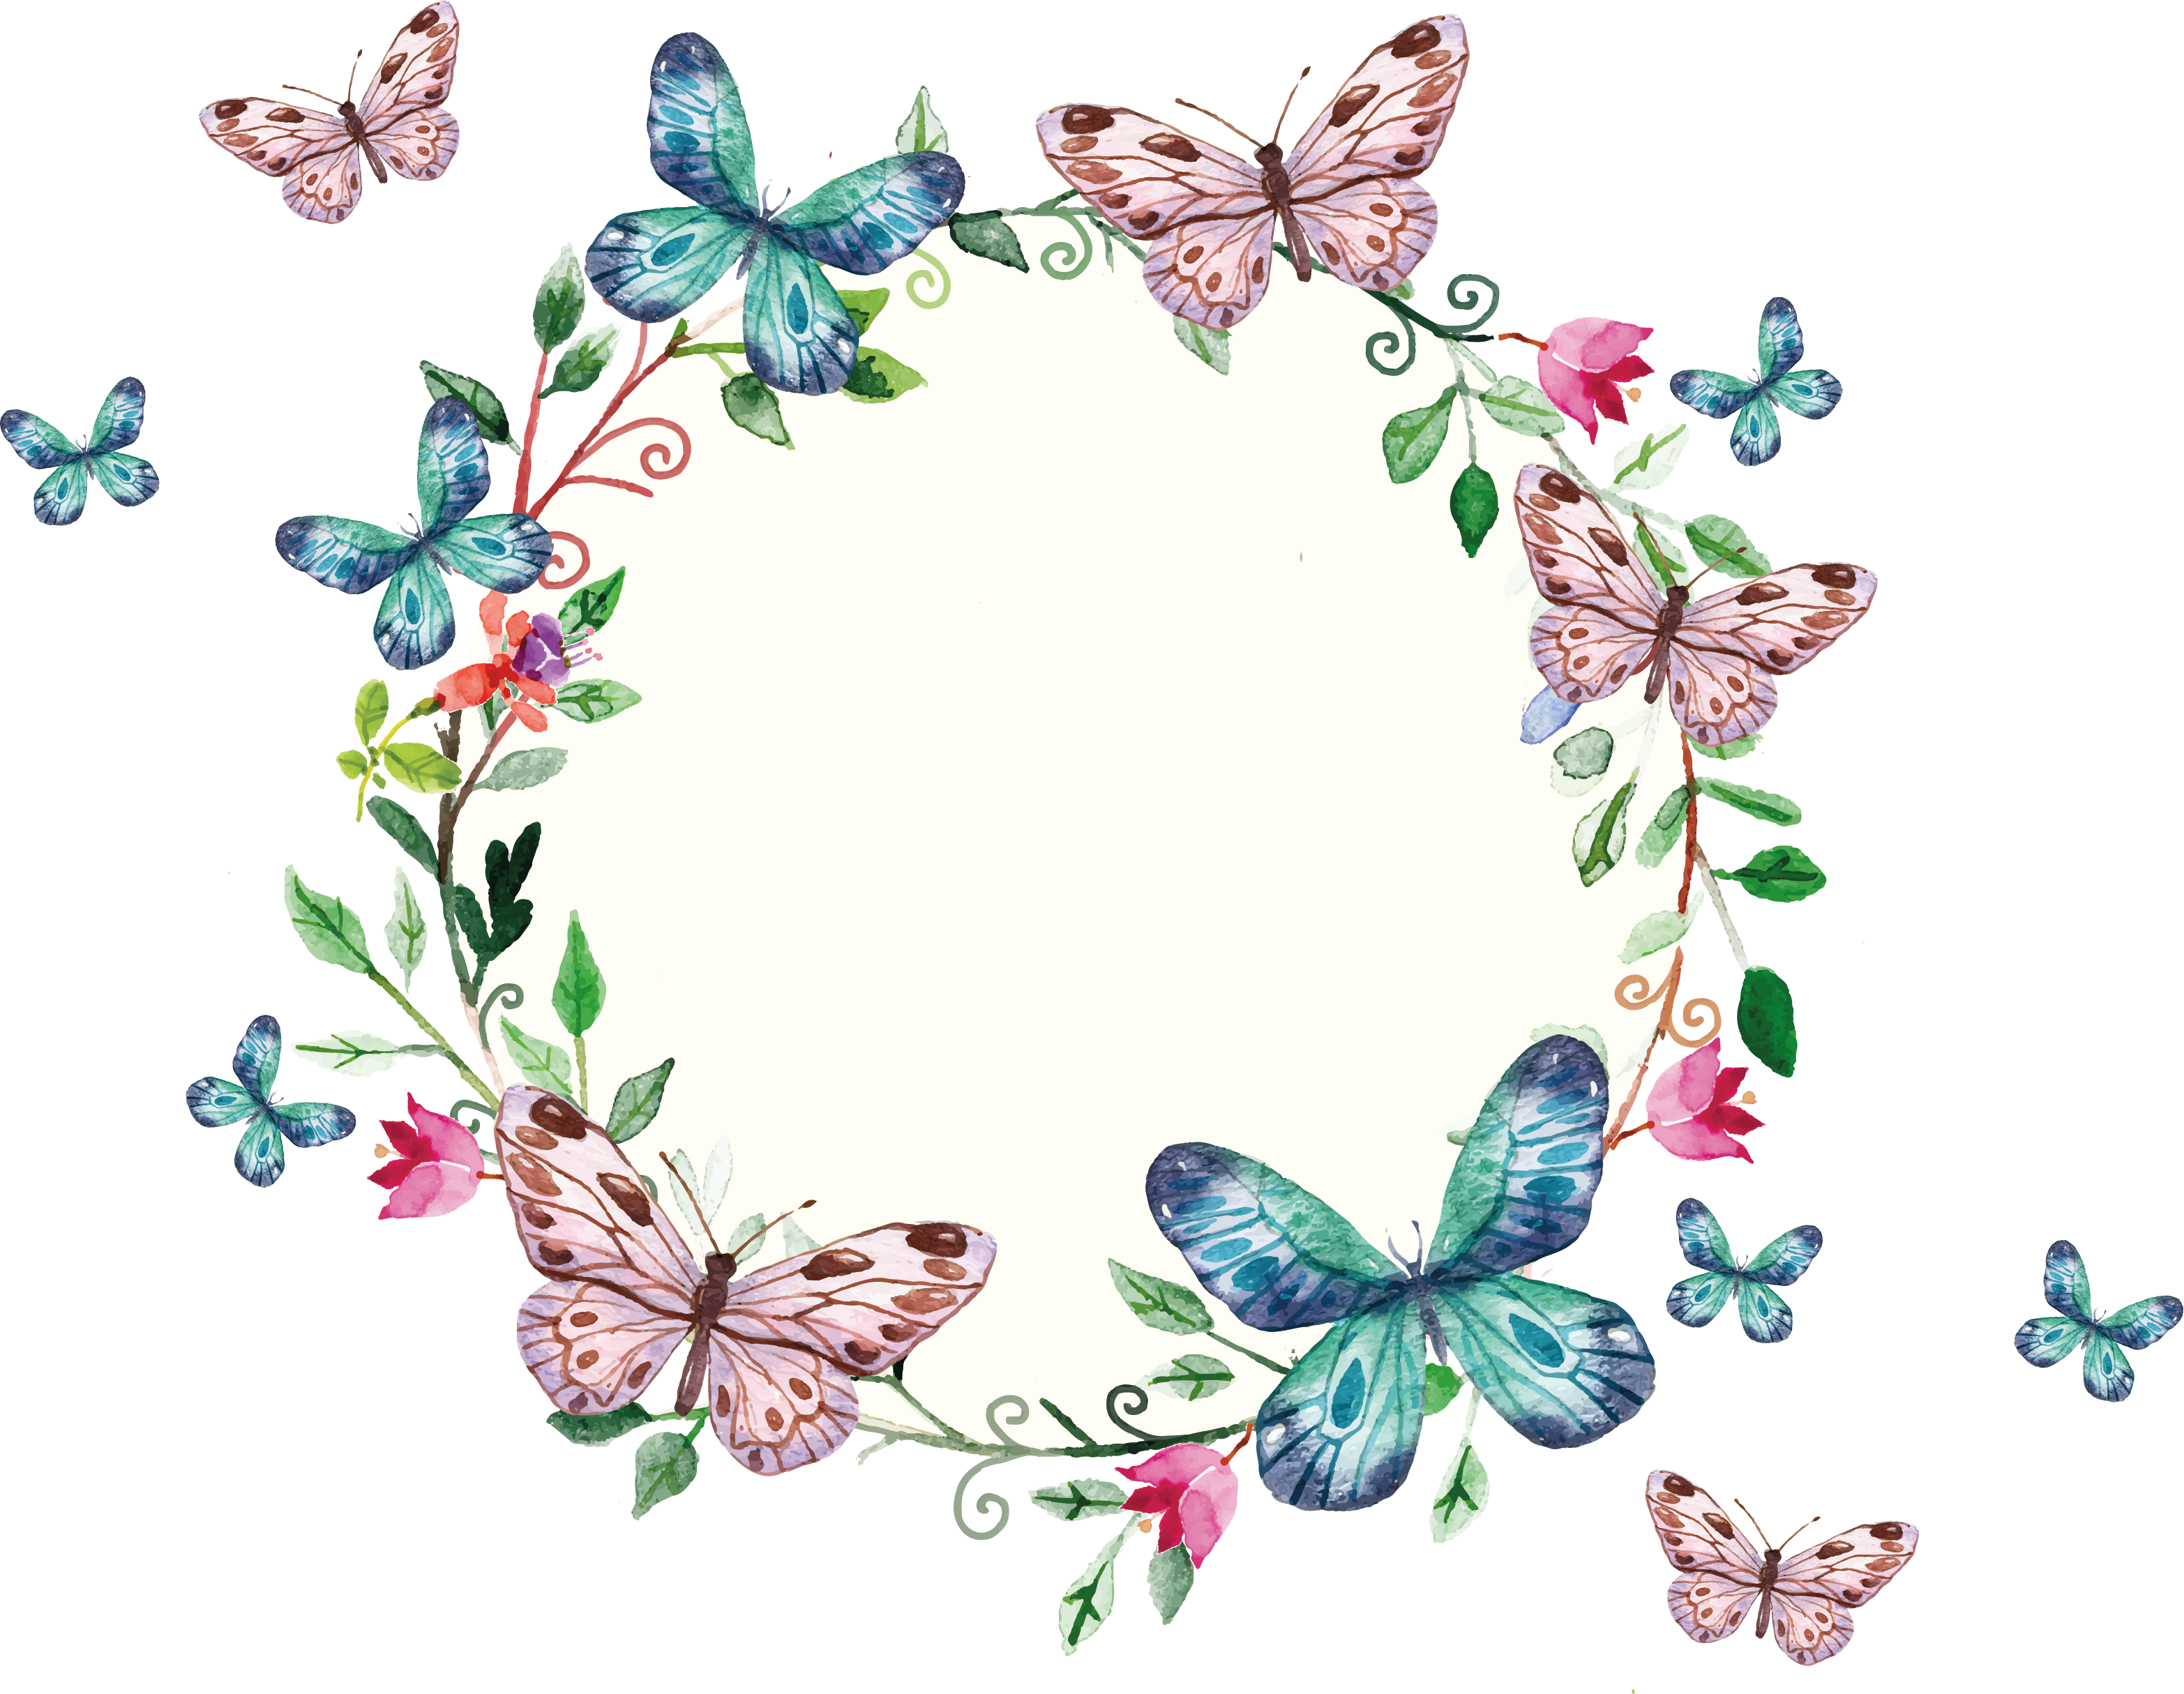 freepi.com / floral wreath and butterflies frame | Marcos ...